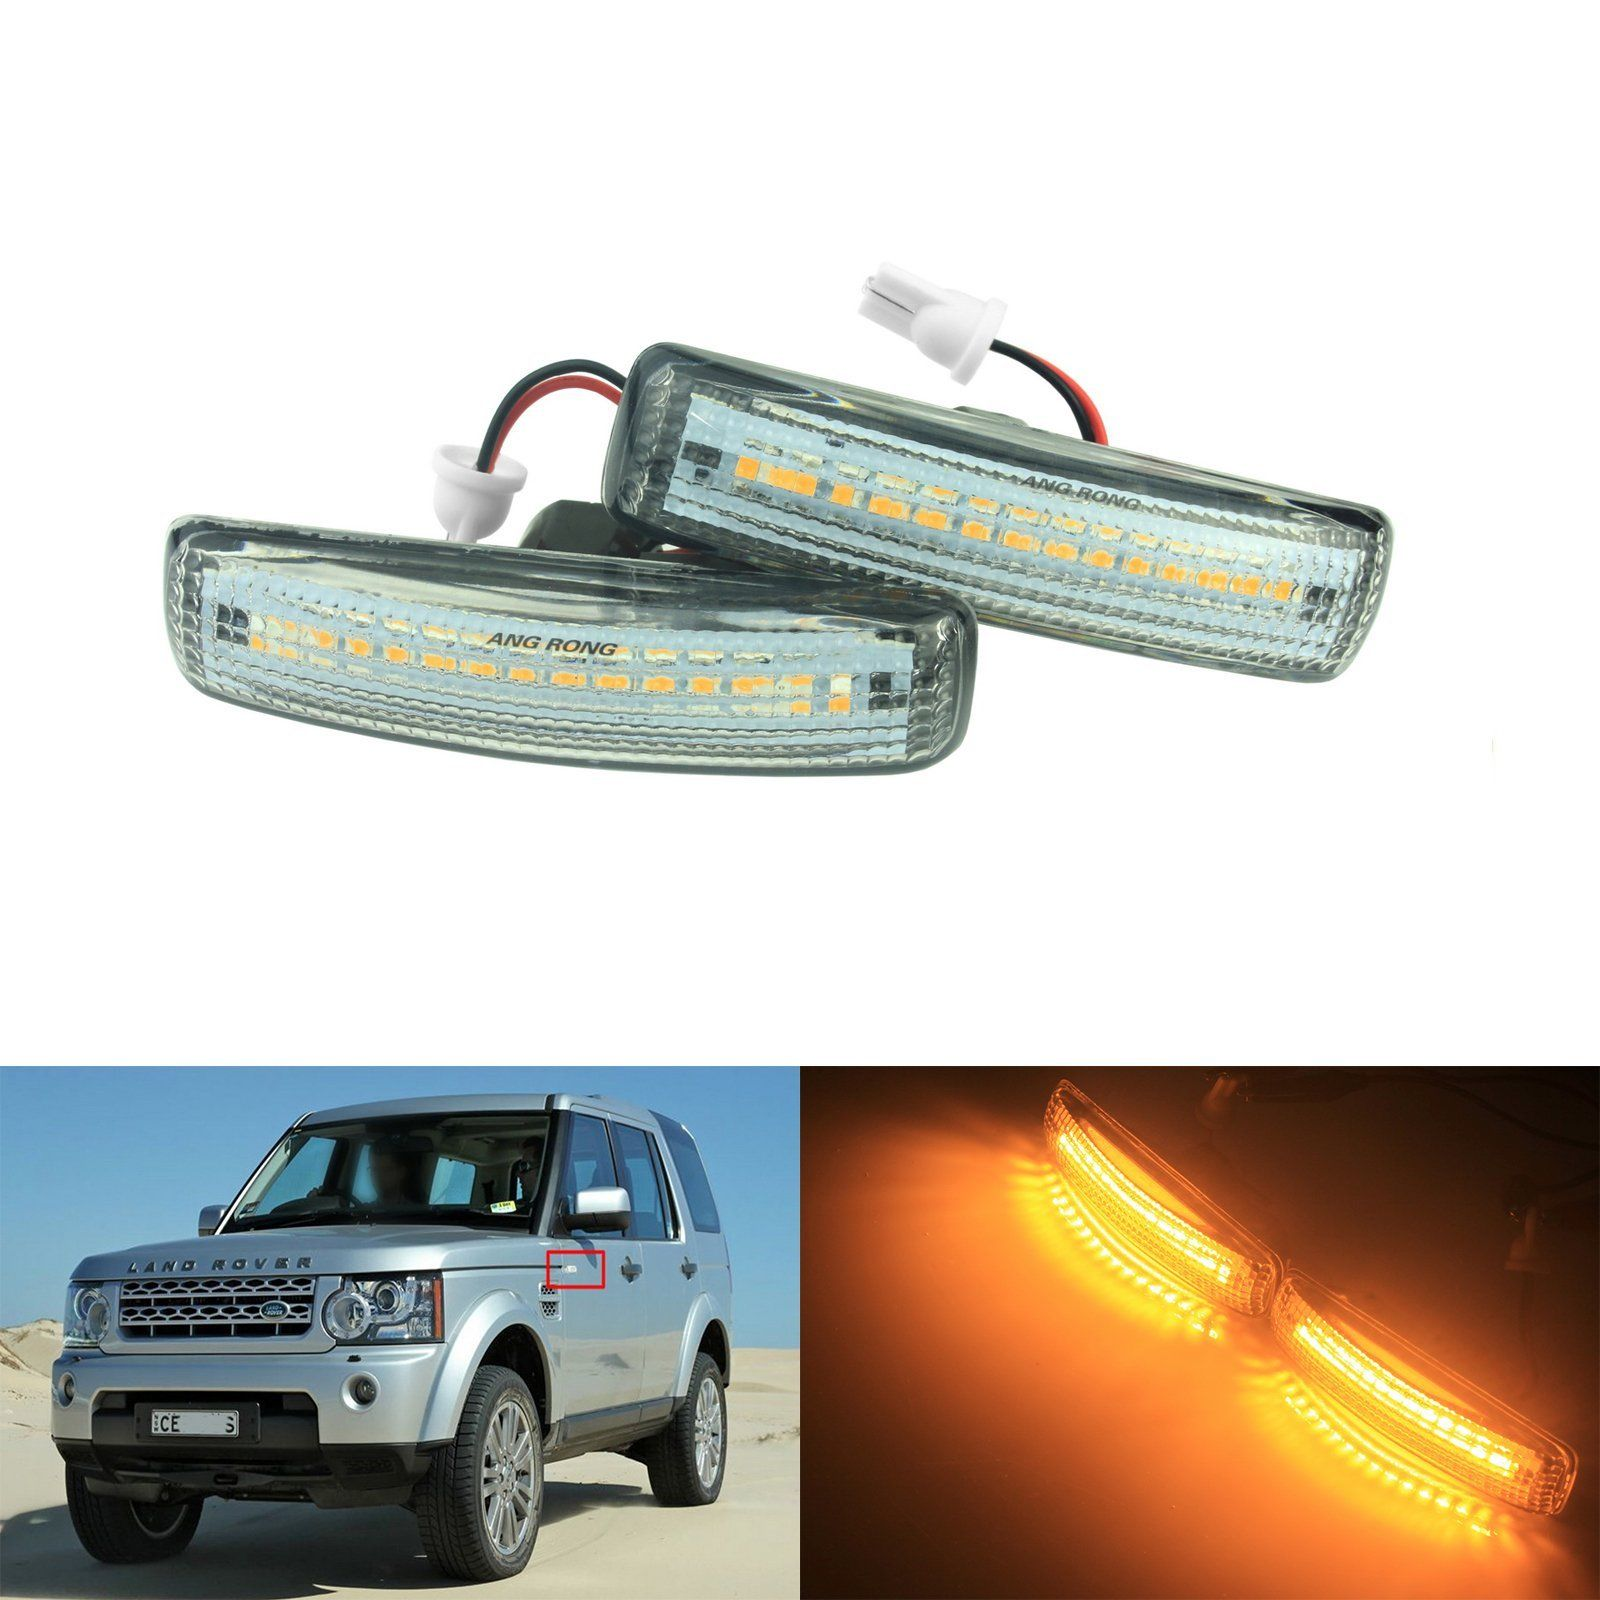 2x 24 Led Rear Bumper Reflector Parking Brake Running Turning Light Land Rover Discovery 3 Handbrake Wiring Diagram Angrong Amber Side Repeater Indicator Lights For 4 Freelander